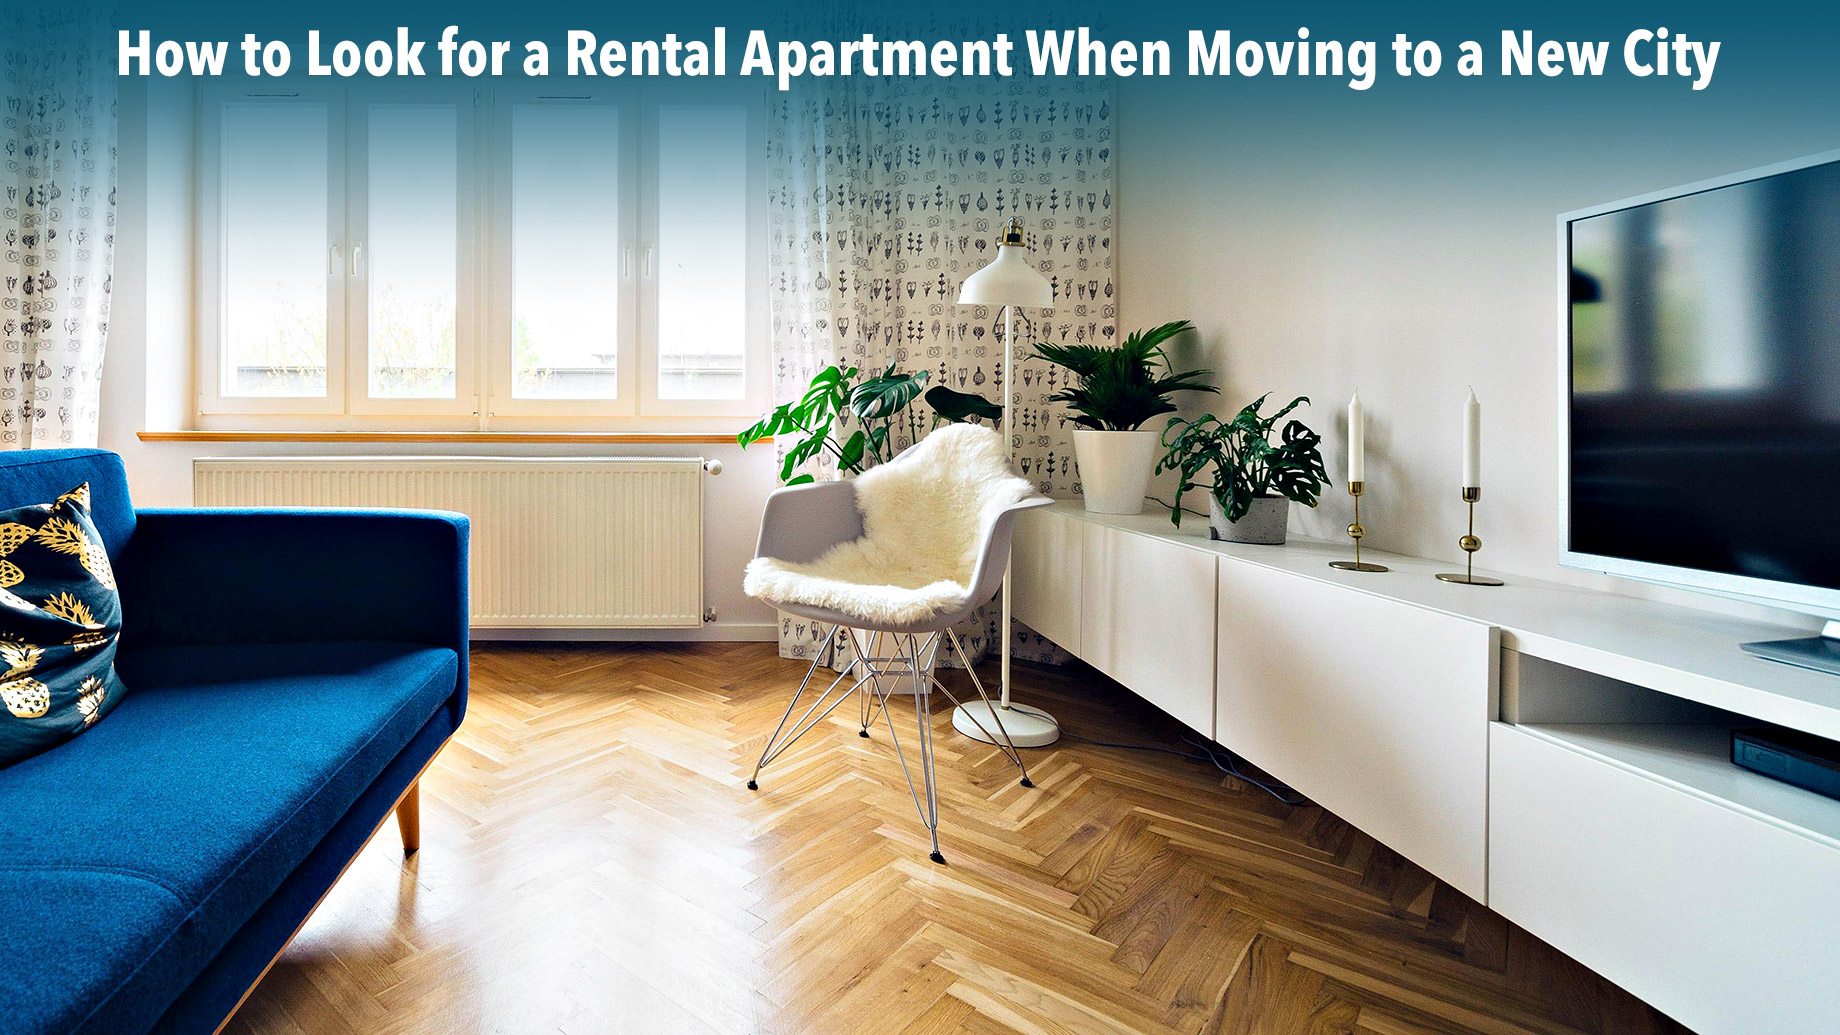 How to Look for a Rental Apartment When Moving to a New City